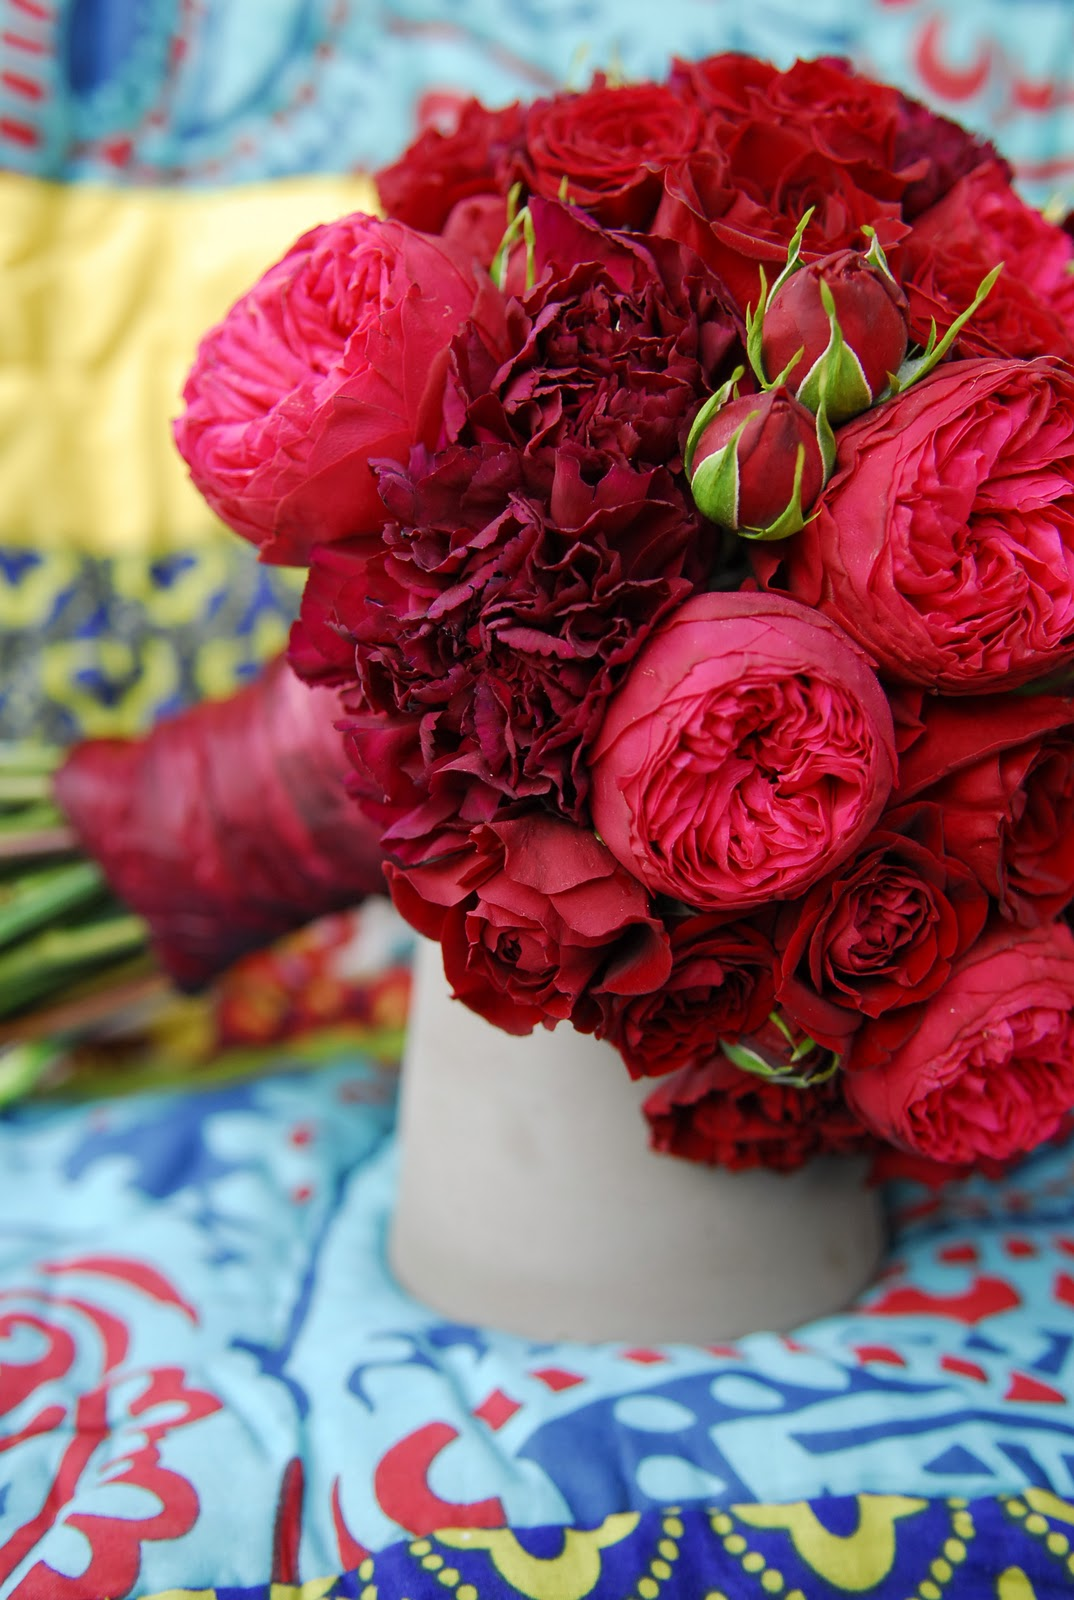 The daily petal the ultimate red bouquet - Red garden rose bouquet ...